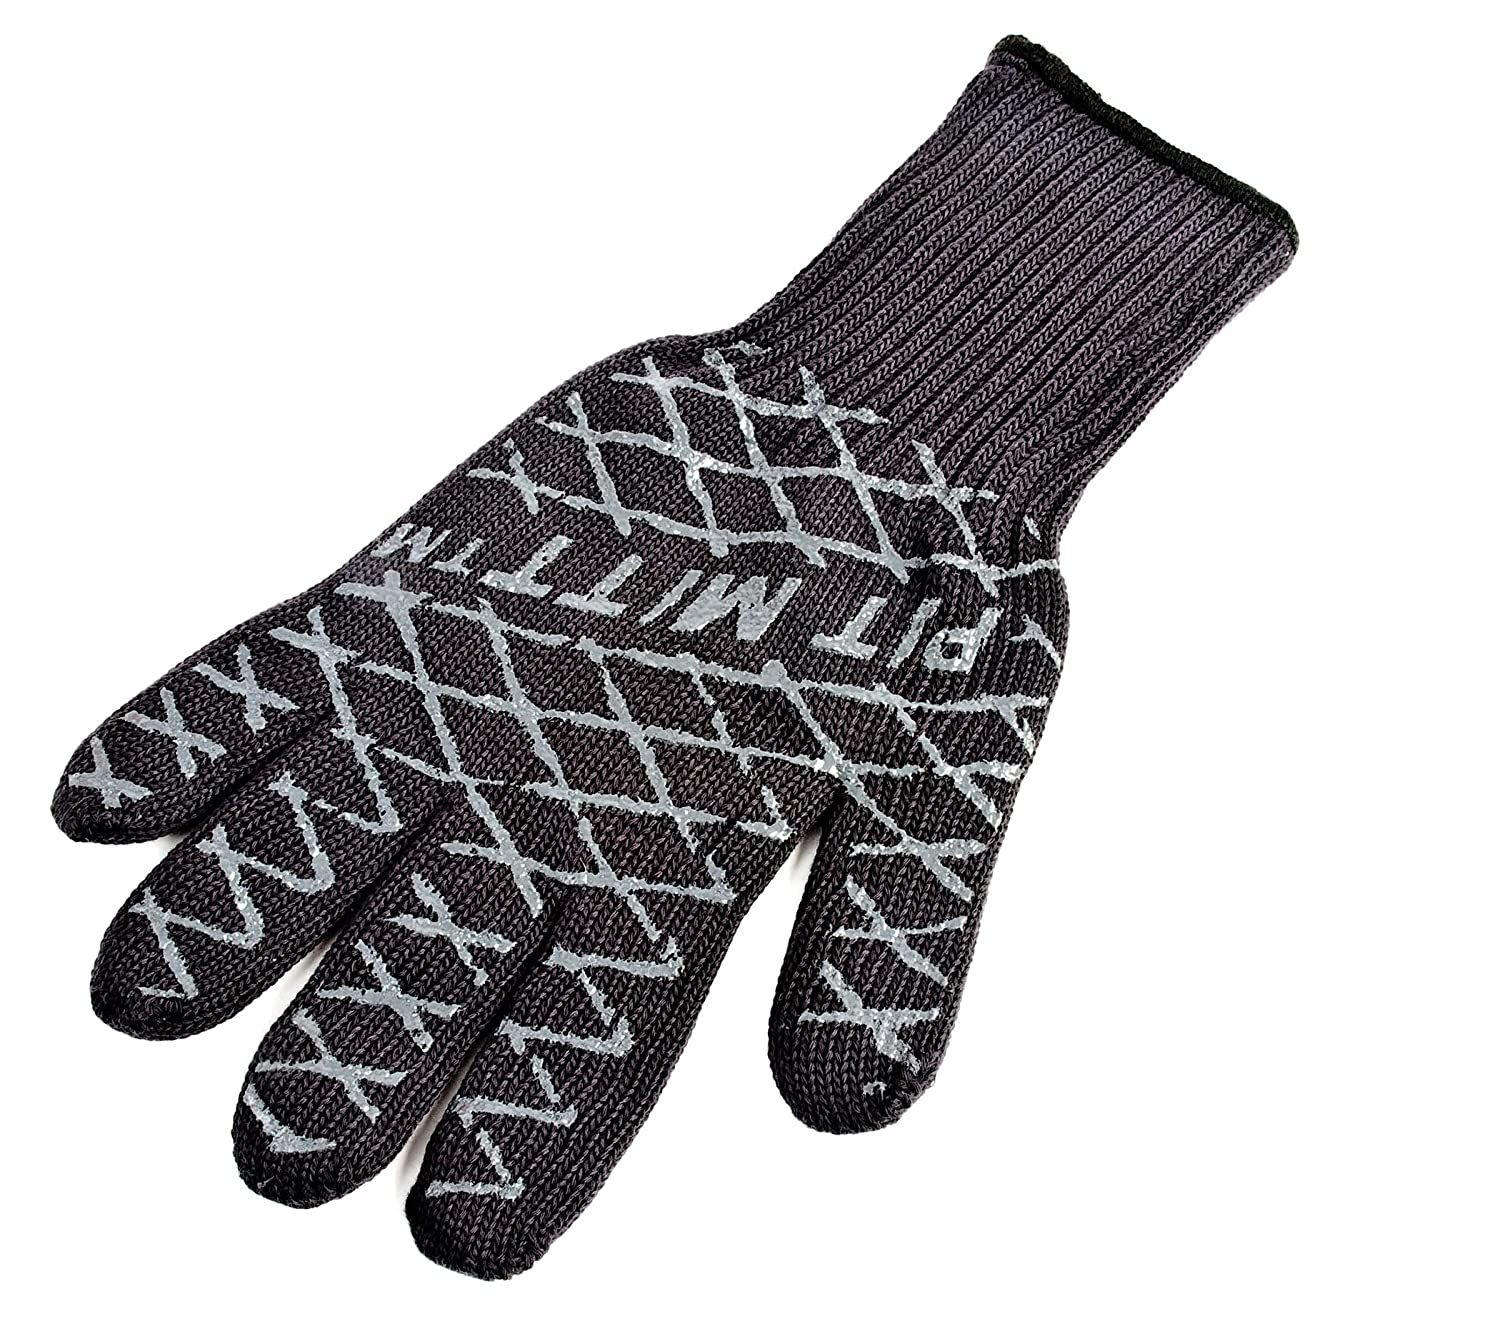 "Charcoal Companion Ultimate Barbecue Pit Mitt Glove - For Grill or Oven - Measures 13"" Long - CC5102."